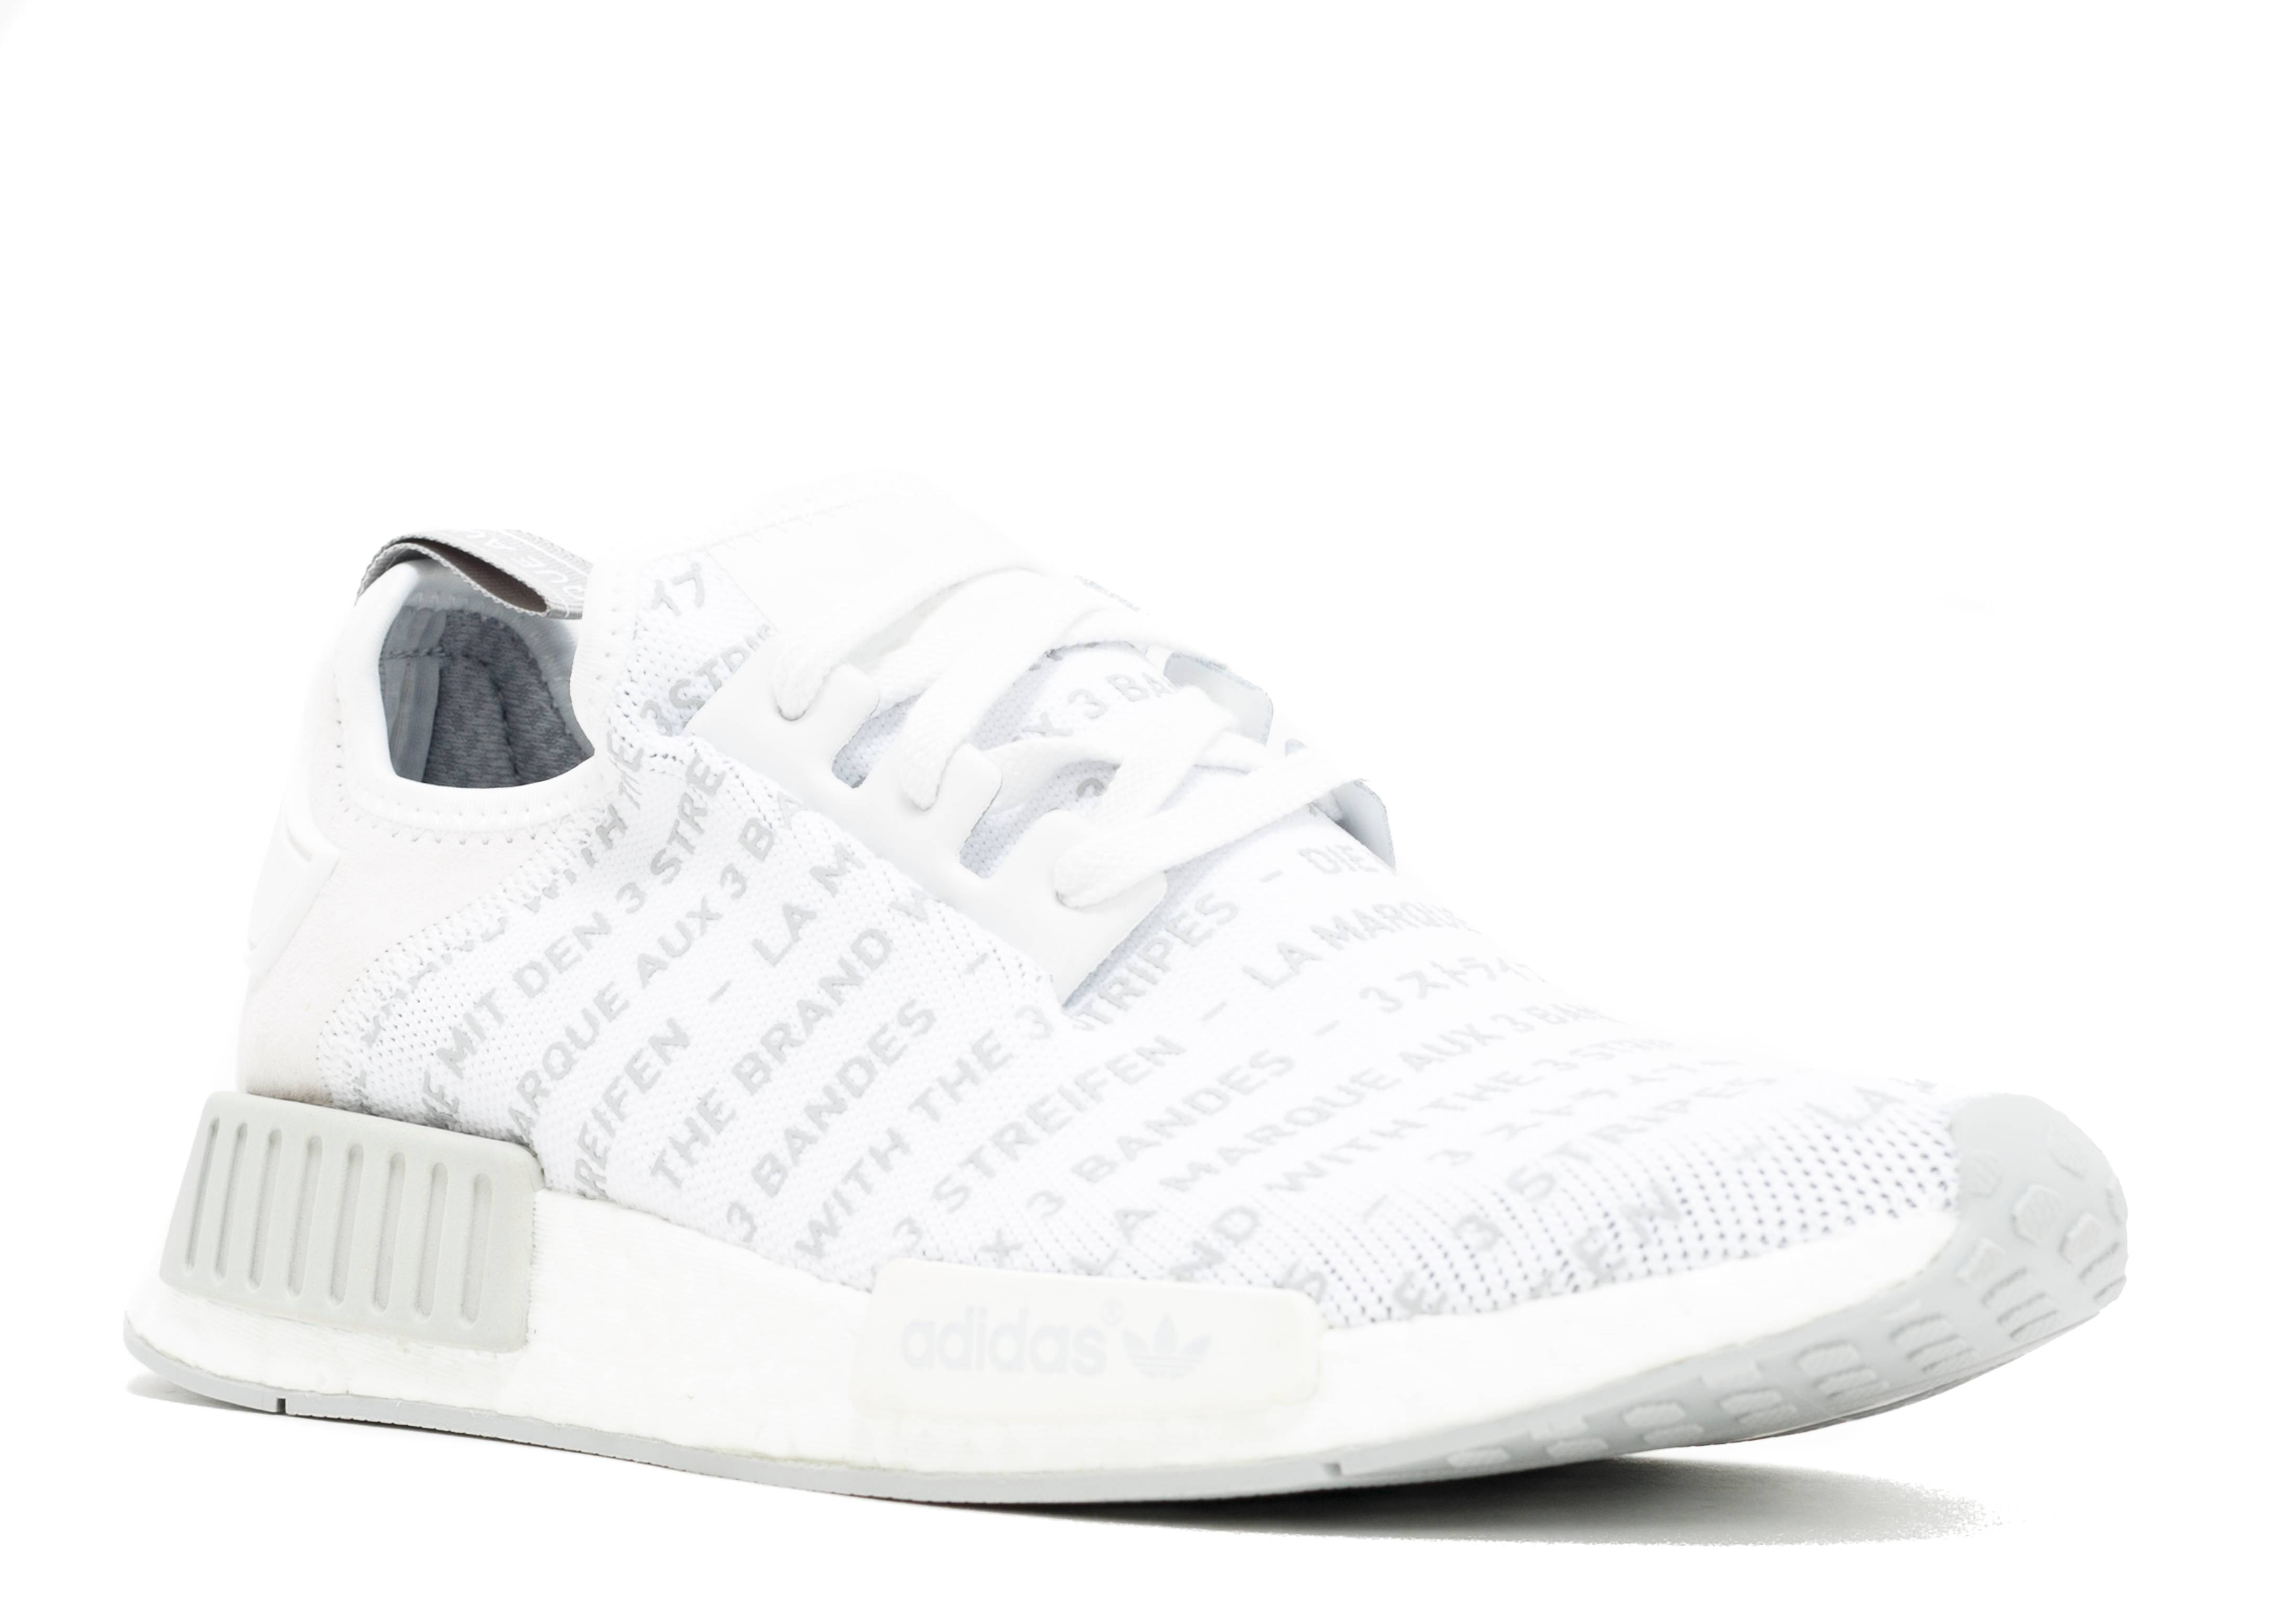 71df8f177741e Adidas Nmd R1 Three Stripes fawdingtonbmw.co.uk